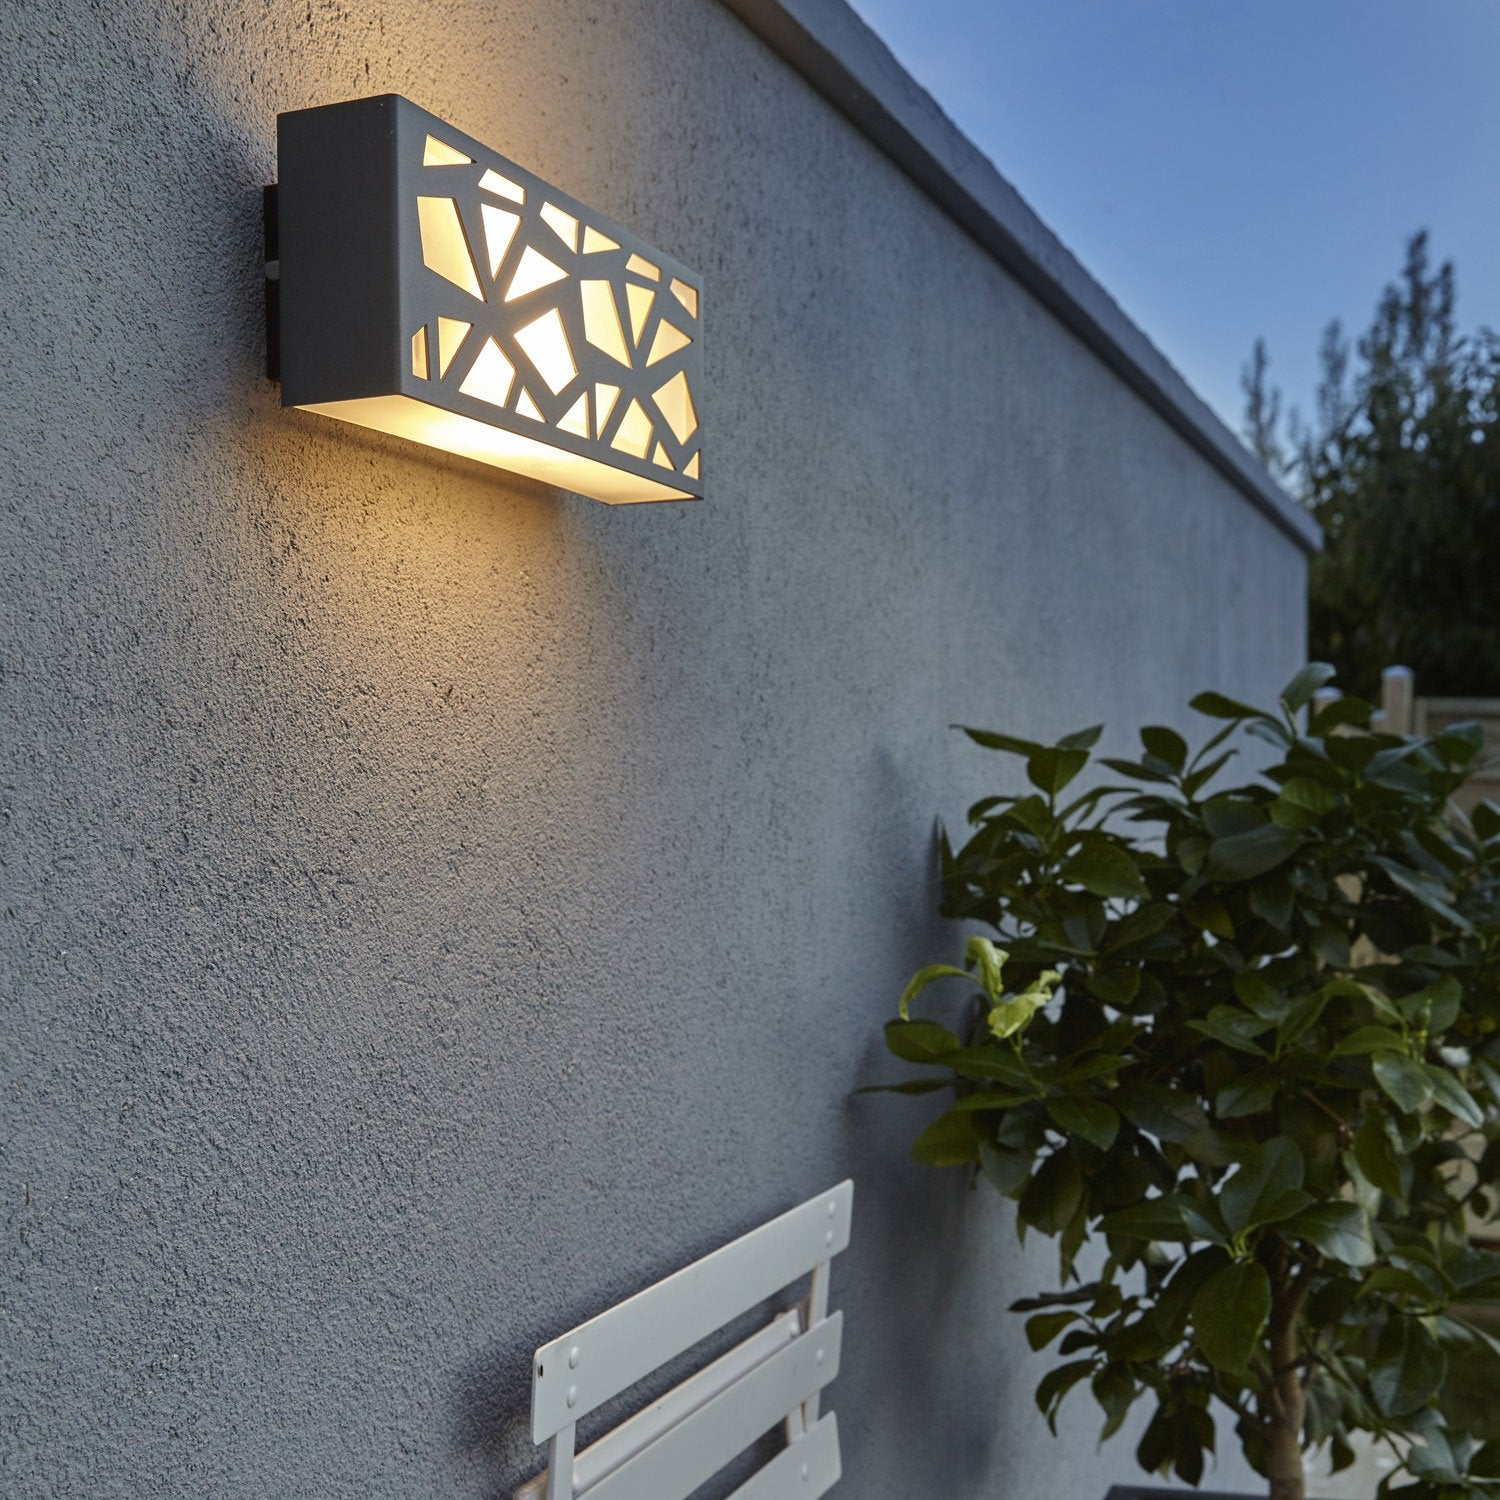 D coration applique exterieure leroy merlin nantes 2917 for Applique murale exterieur led leroy merlin